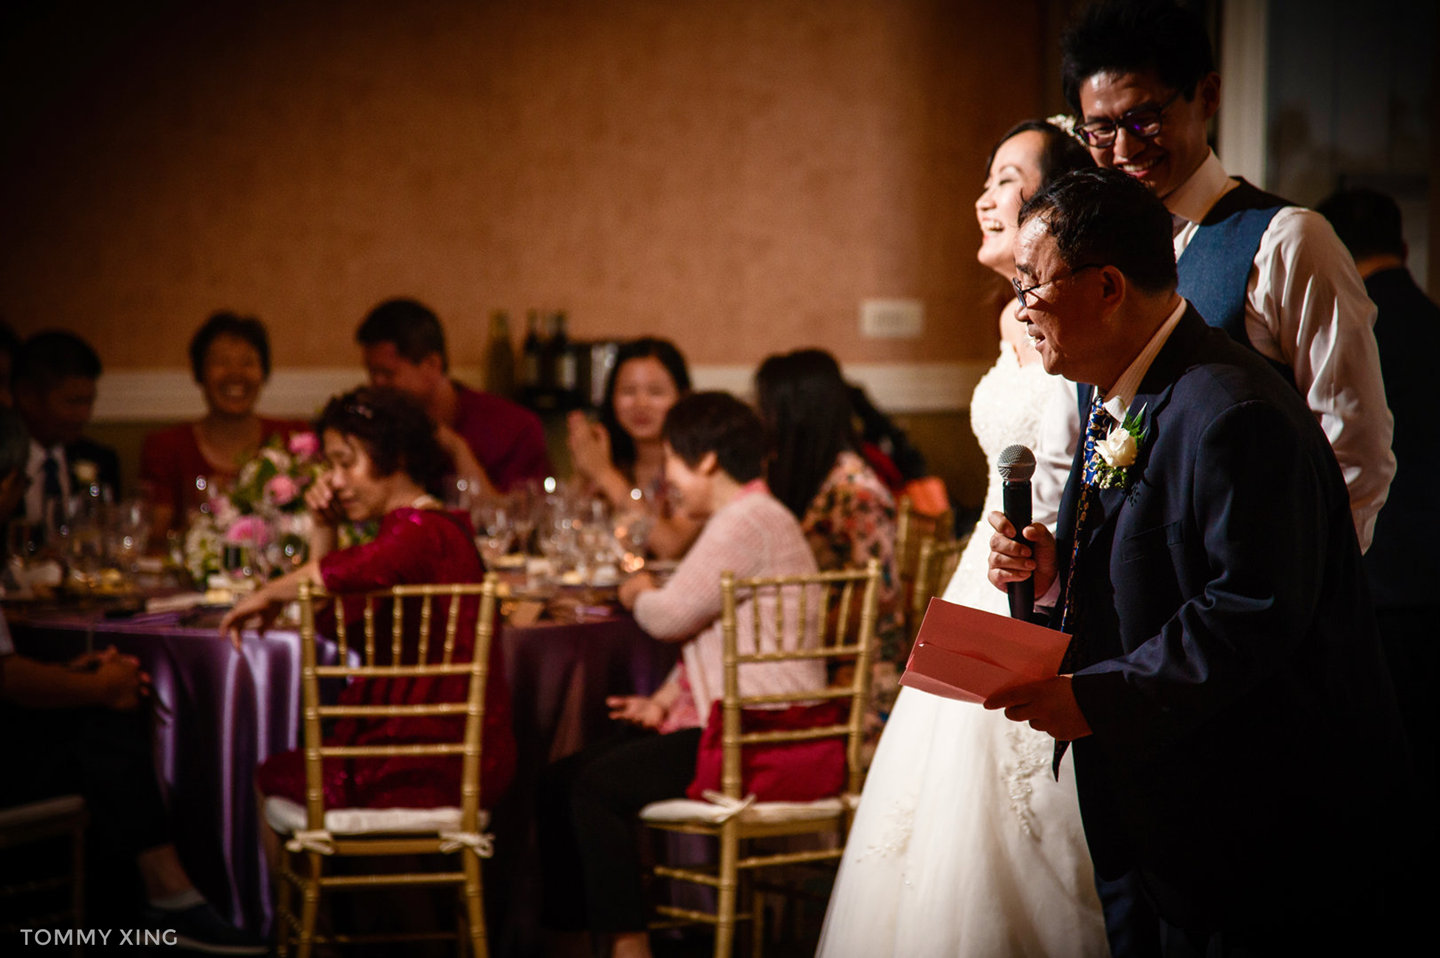 Paradise Point Resort Wedding Xiaolu & Bin San Diego 圣地亚哥婚礼摄影跟拍 Tommy Xing Photography 洛杉矶婚礼婚纱照摄影师 249.jpg